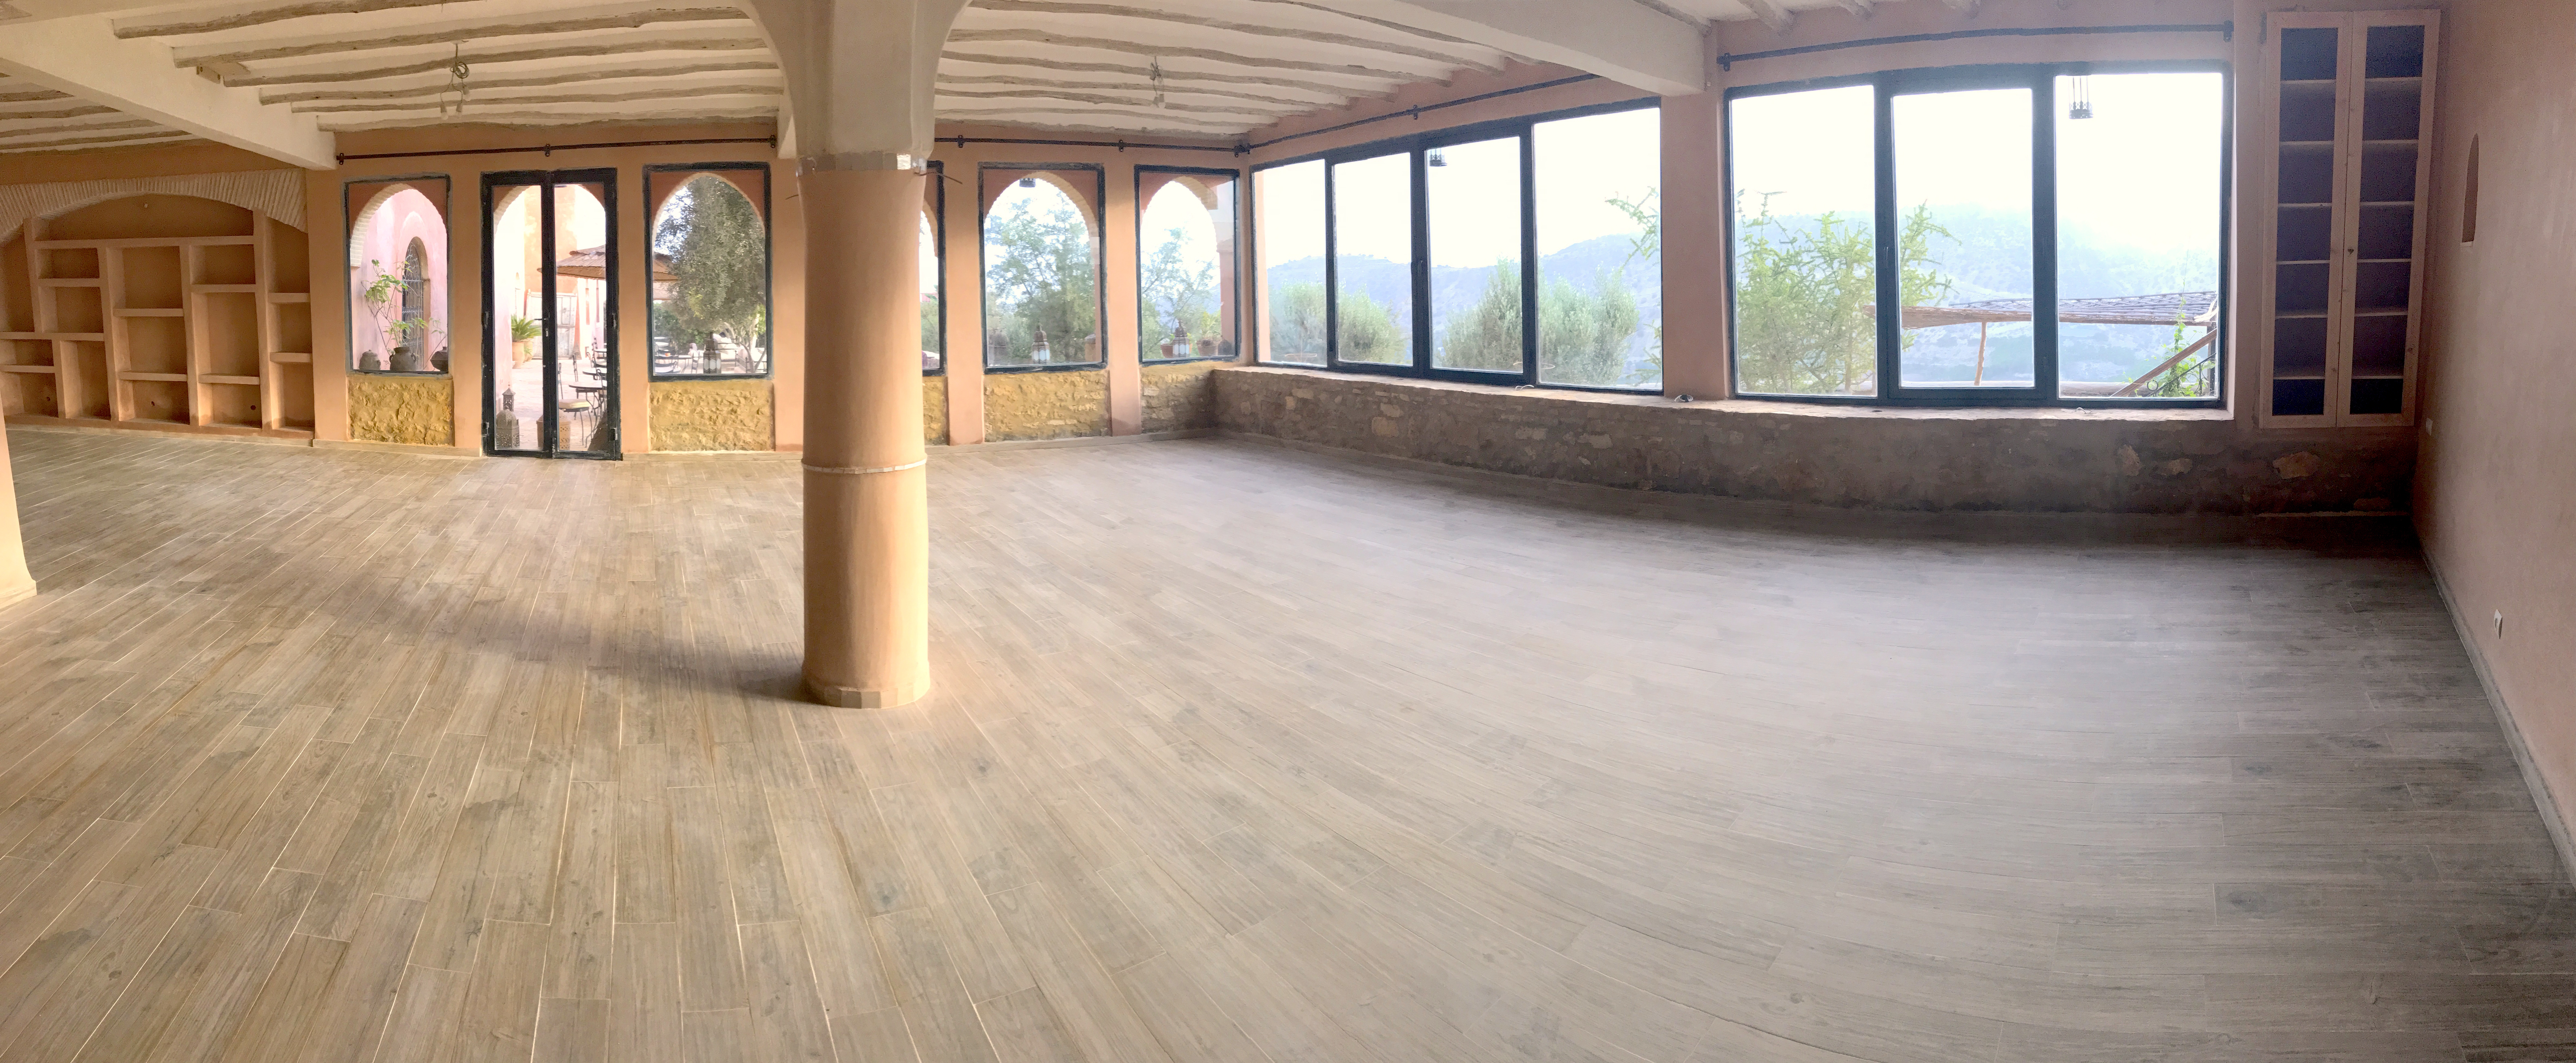 Large yoga studio